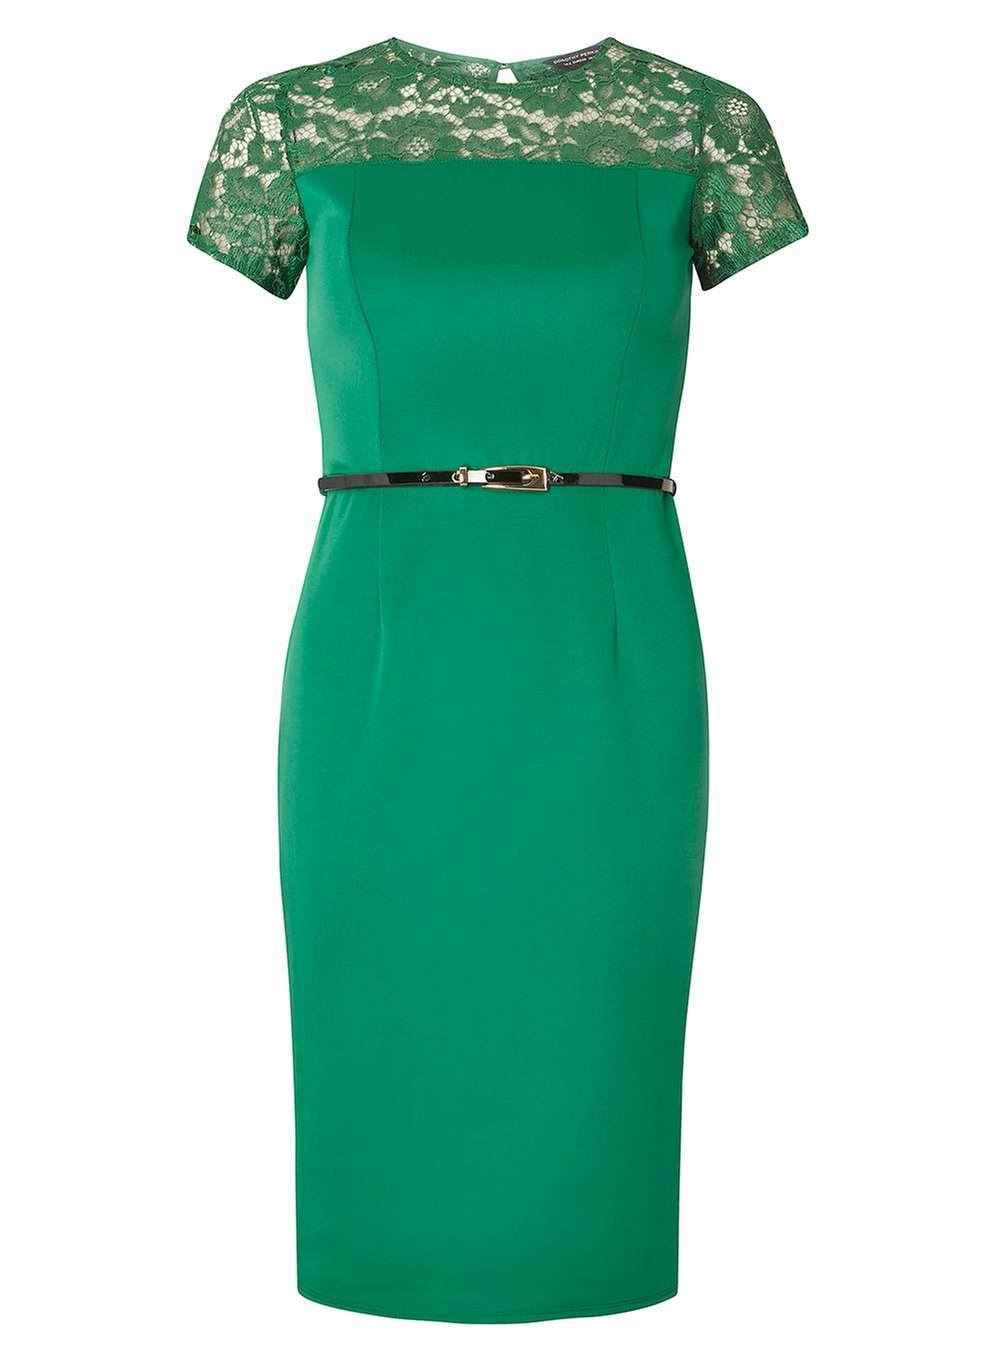 Womens Lace Contrast Pencil Dress Green - style: shift; pattern: plain; bust detail: sheer at bust; waist detail: belted waist/tie at waist/drawstring; predominant colour: emerald green; occasions: evening; length: on the knee; fit: body skimming; fibres: polyester/polyamide - stretch; neckline: crew; sleeve length: short sleeve; sleeve style: standard; pattern type: fabric; texture group: jersey - stretchy/drapey; embellishment: lace; season: a/w 2016; wardrobe: event